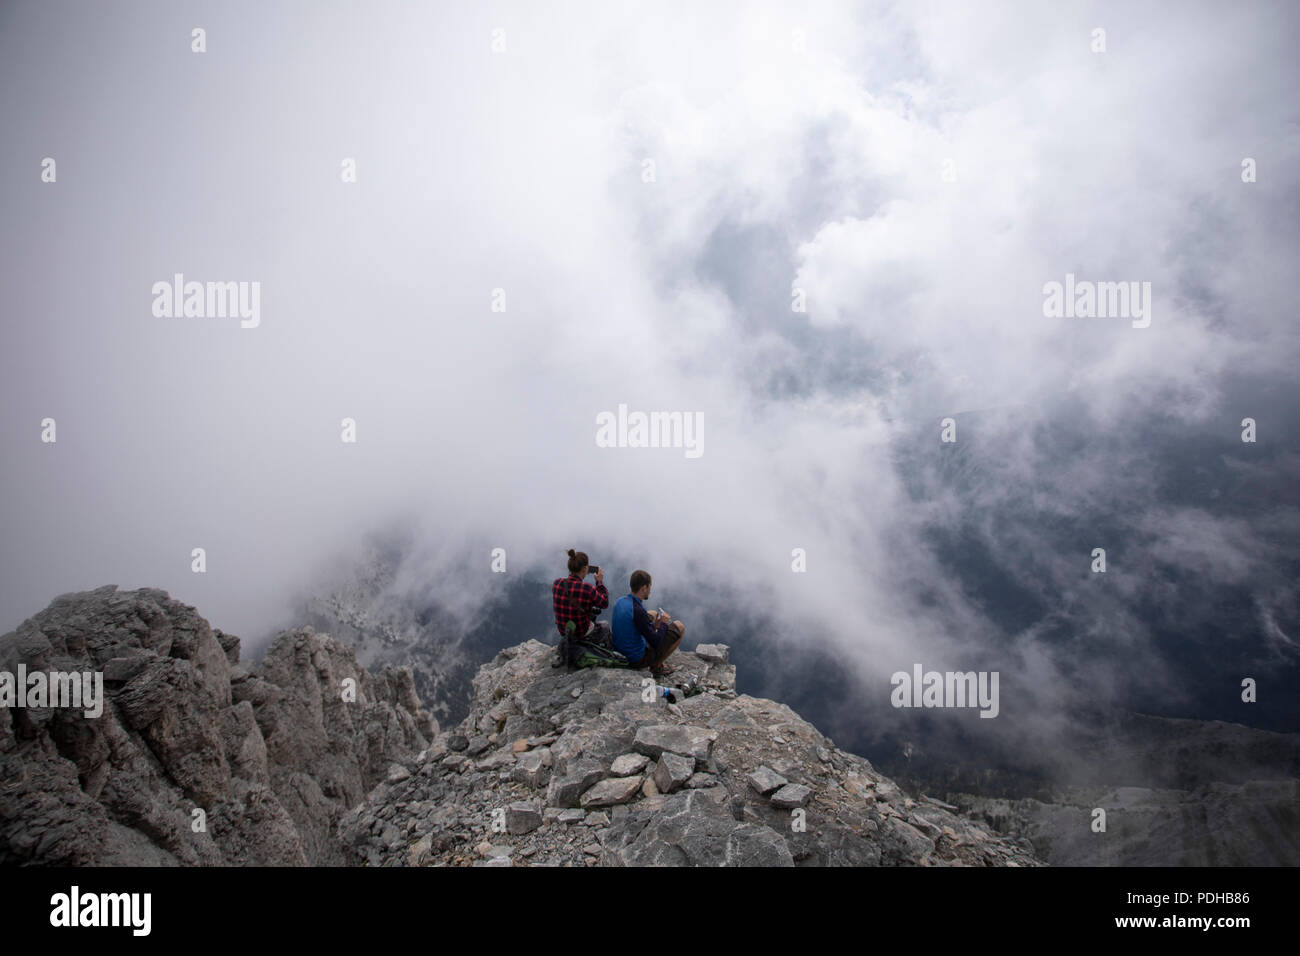 Katerini, Greece. 9th Aug, 2018. Photo taken on Aug. 8, 2018 shows mountaineers enjoying the view from 'Mytikas', the highest peak of Mount Olympus, northern Greece. Mount Olympus is the highest mountain in Greece with the highest peak of 2,917 meters. Olympus is notable in Greek mythology as the home of the Greek gods. Credit: Dimitris Tosidis/Xinhua/Alamy Live News - Stock Image